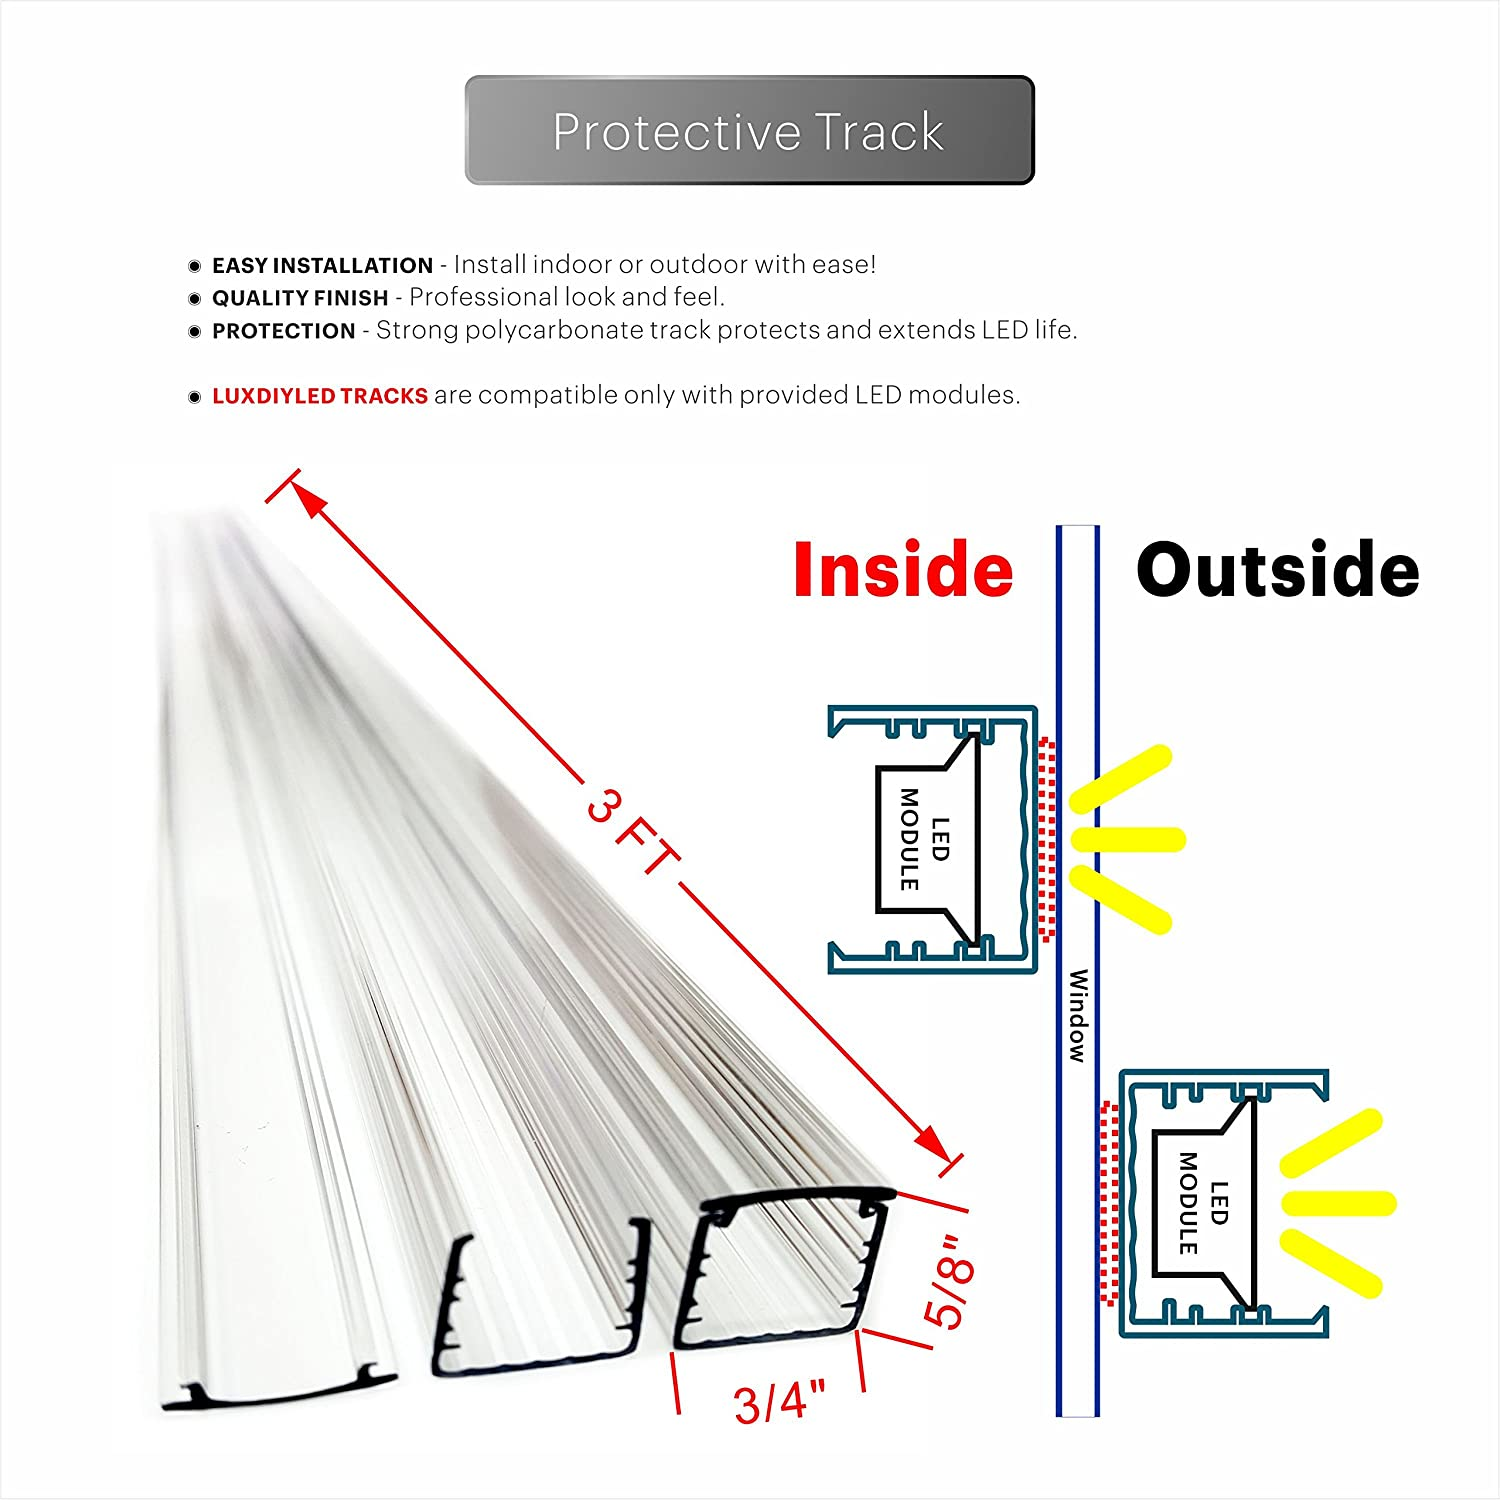 Storefront Window Led Lights Kit With Protective Tracks Module Wiring Diagram For Indoor Outdoor Plug In Light White 25ft Garden